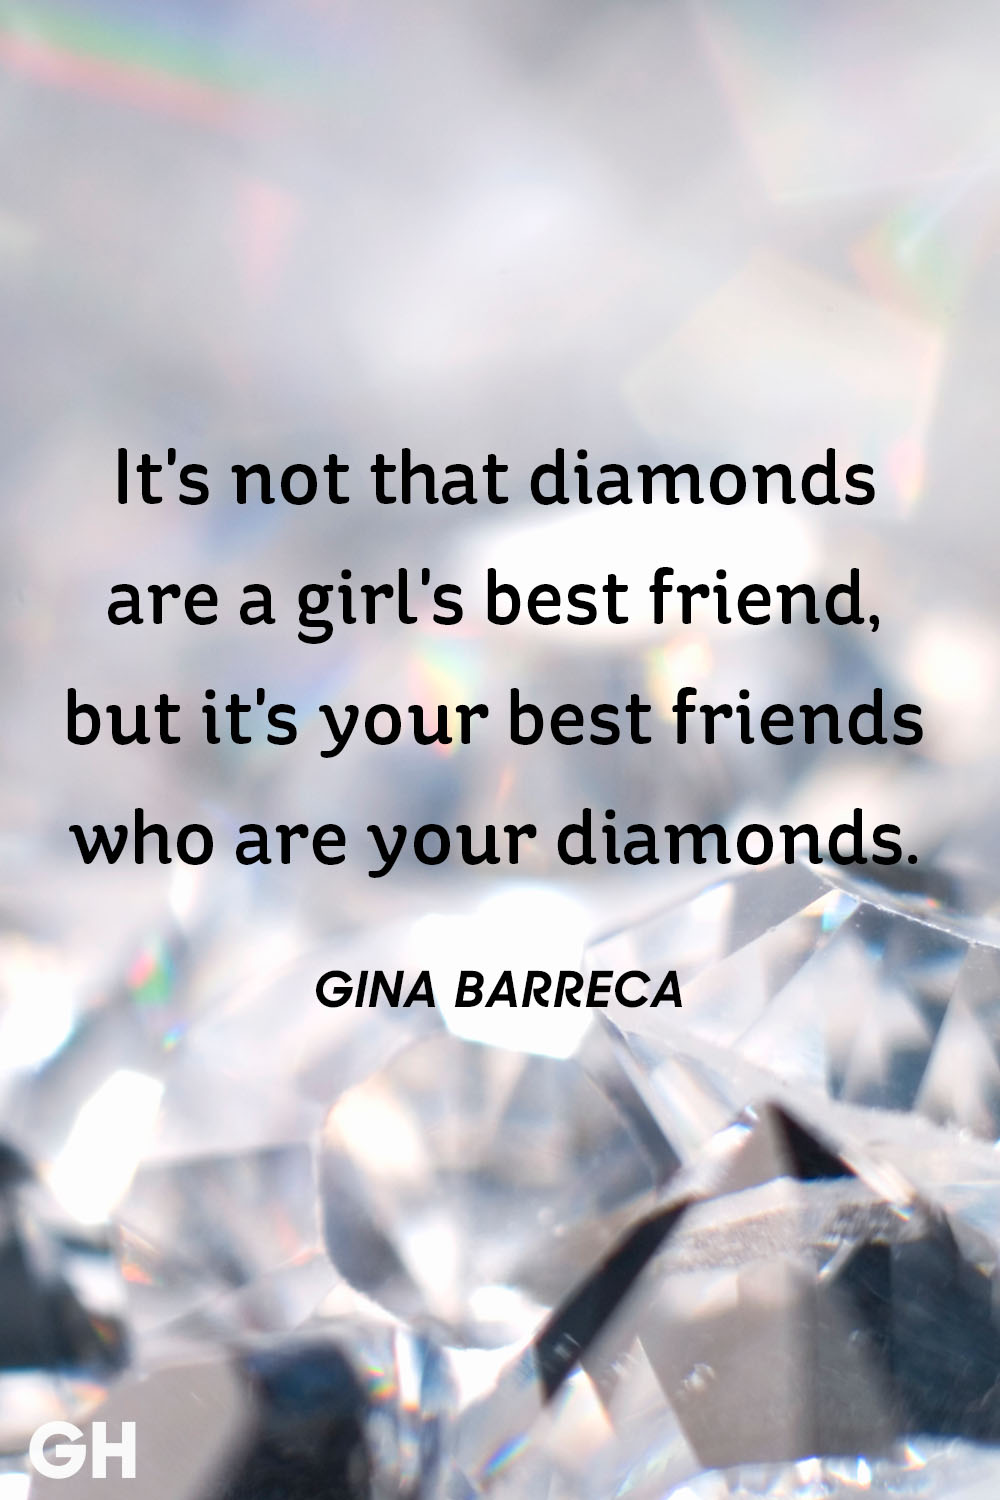 Girly quotes about friends